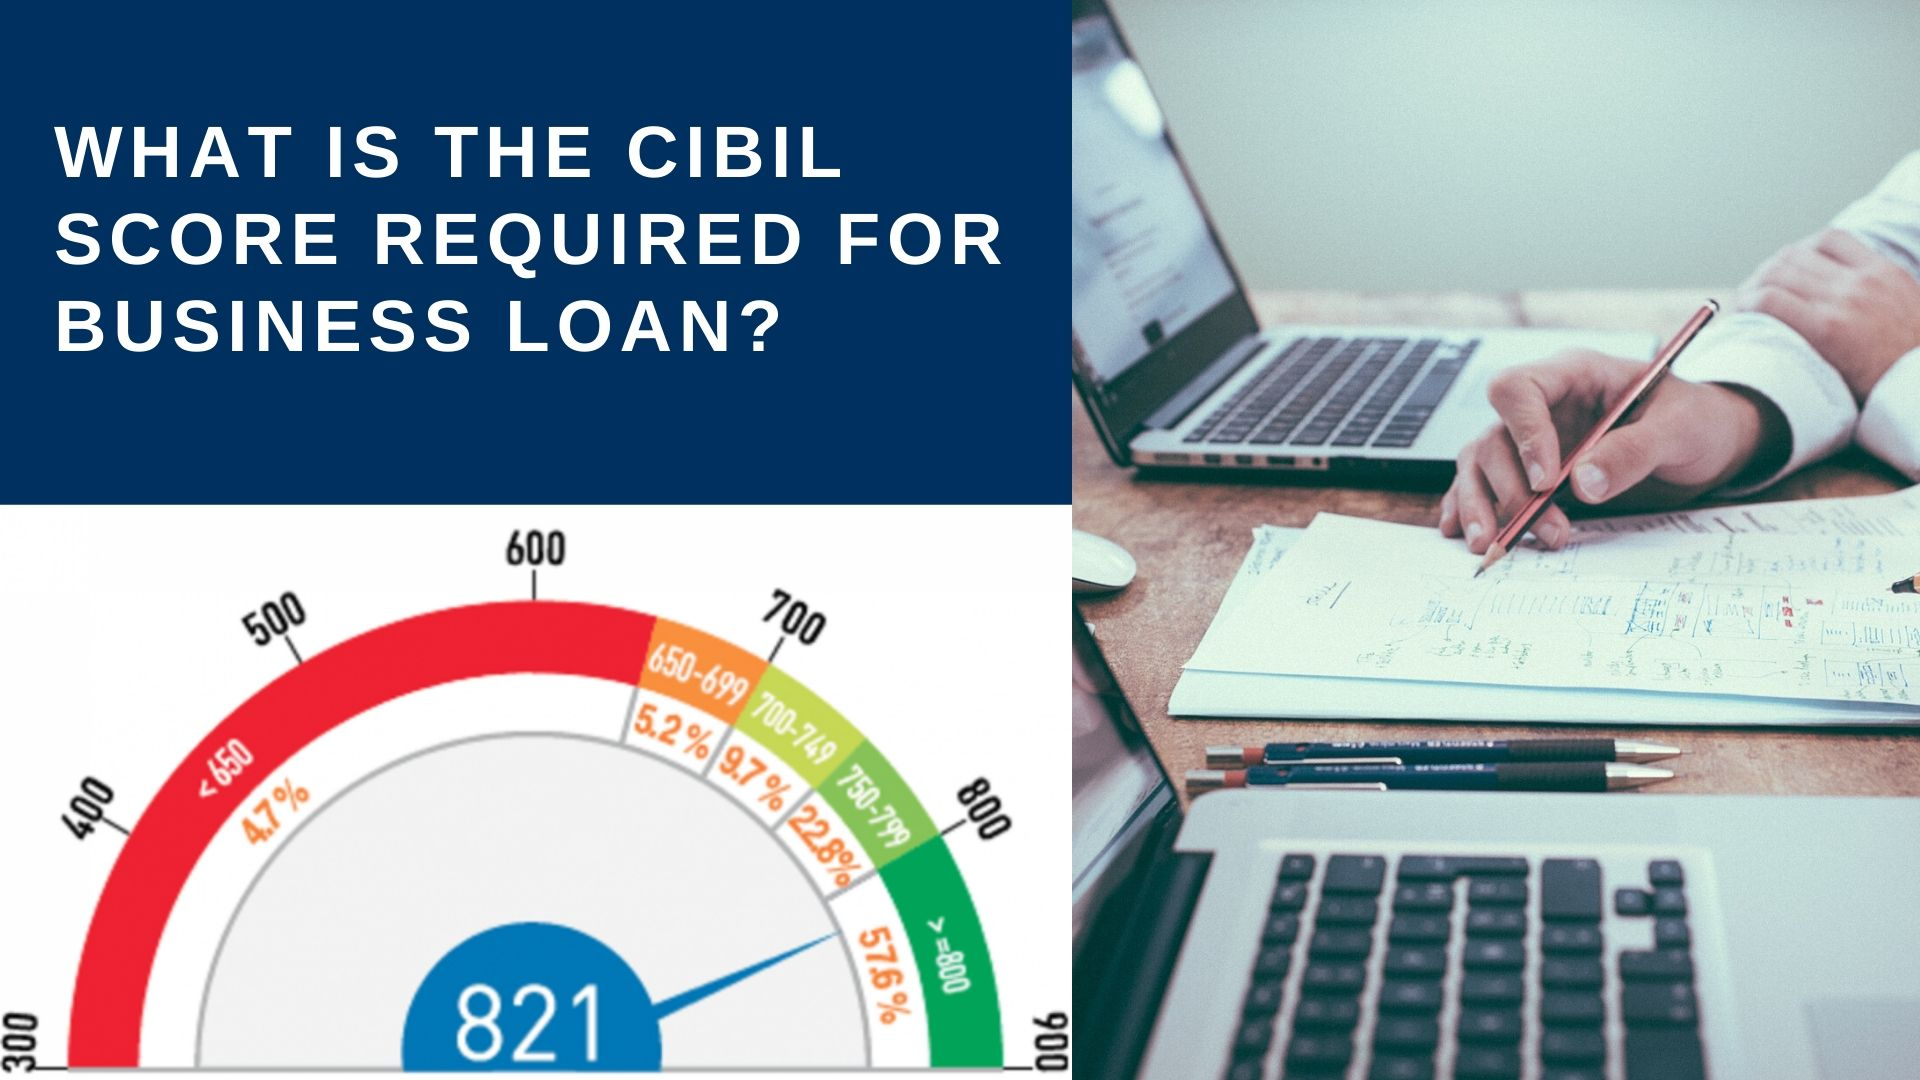 CIBIL Score Required for Business Loan